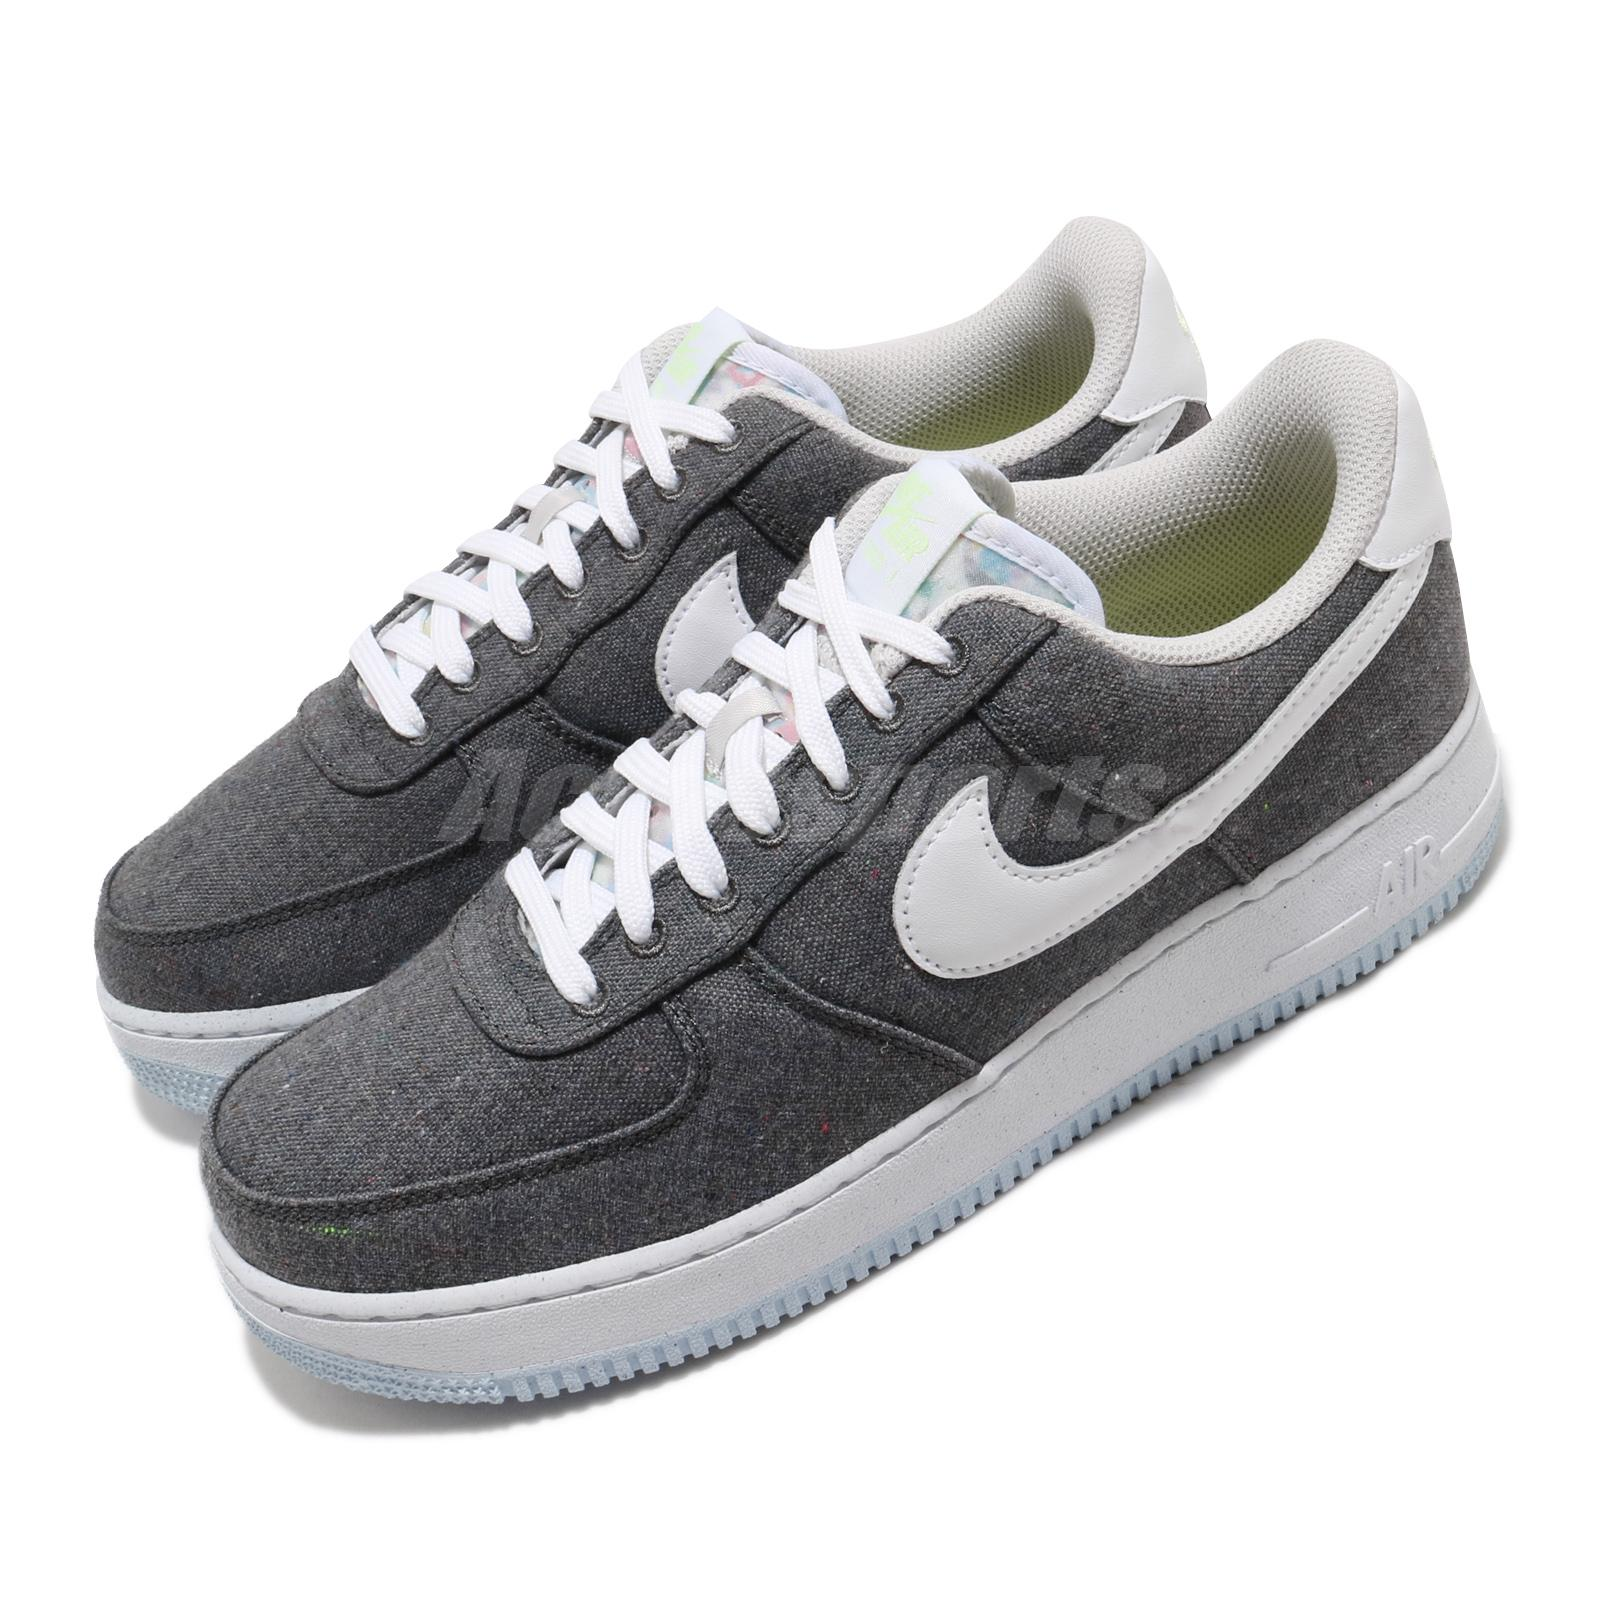 Details about Nike Air Force 1 07 AF1 Iron Grey White Men Casual Lifestyle  Shoes CN0866-002